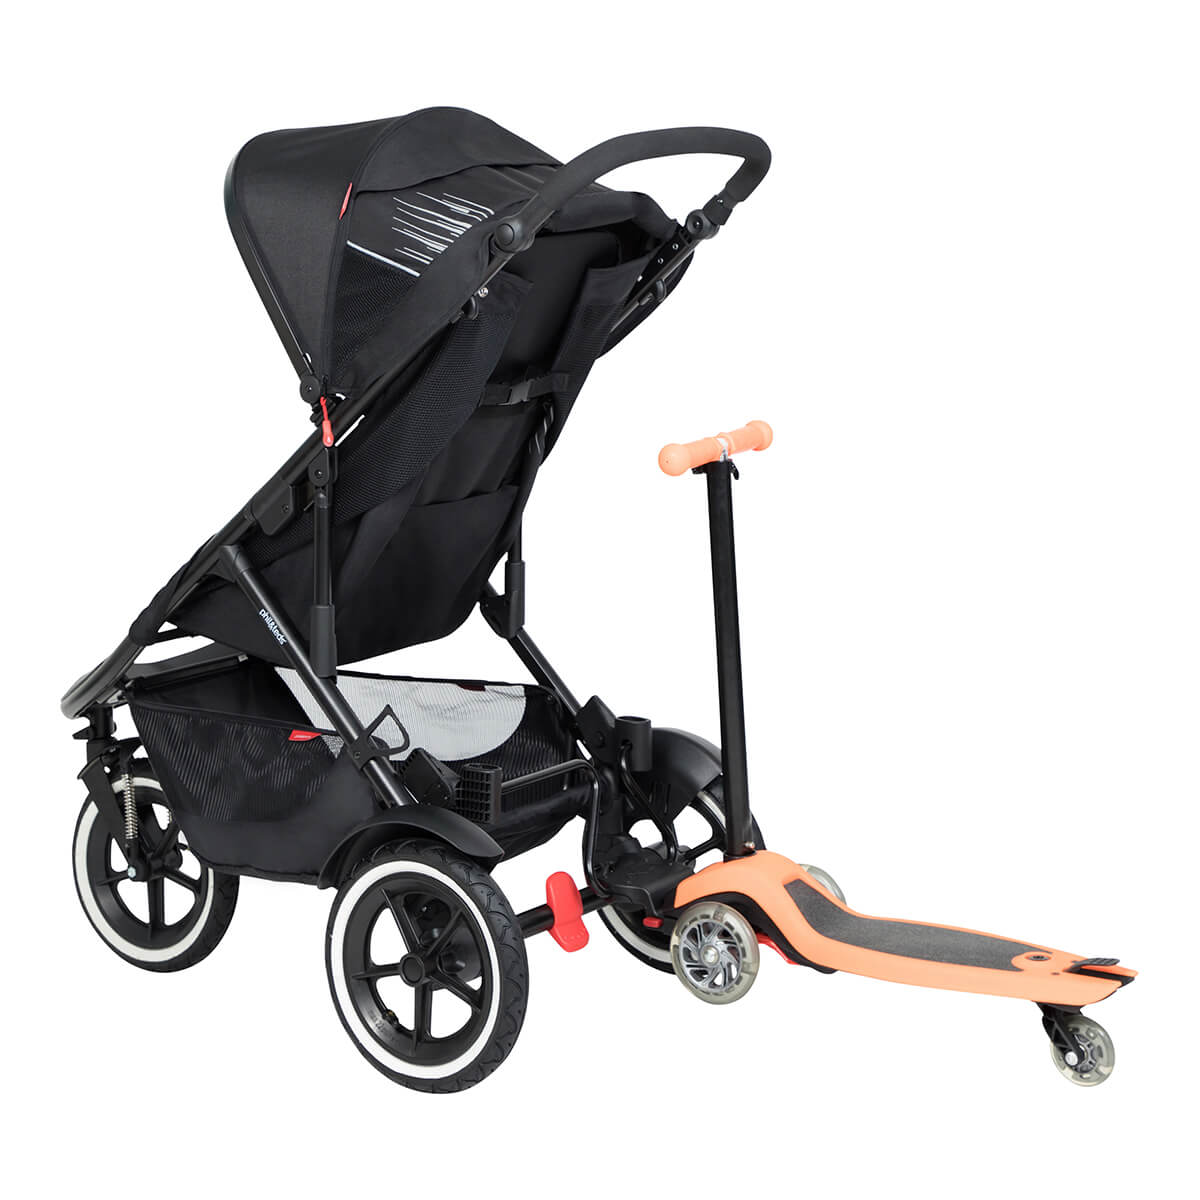 https://cdn.accentuate.io/4546157740137/19119322824809/philteds-sport-buggy-with-freerider-stroller-board-in-rear-v1625778274042.jpg?1200x1200